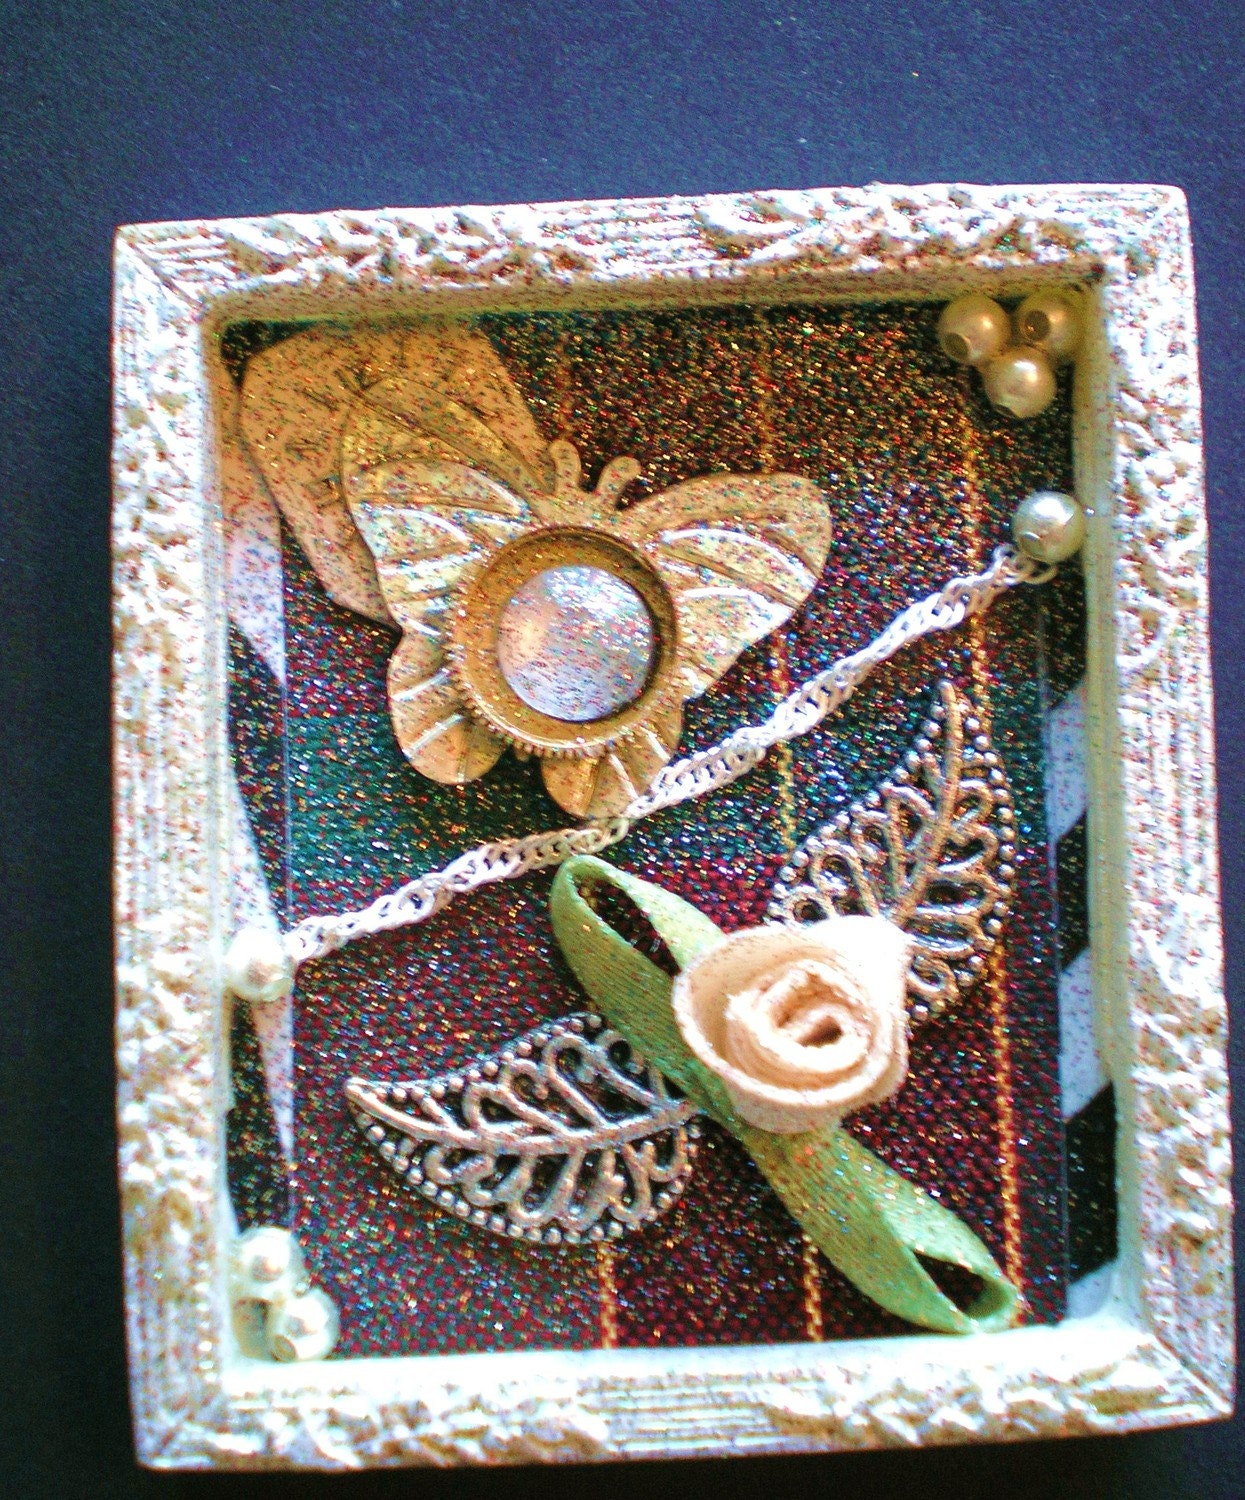 IMMEMORIAL  - Tiny Collage Mixed Media OOAK Framed Signed with Beads Flowers Silver Chain